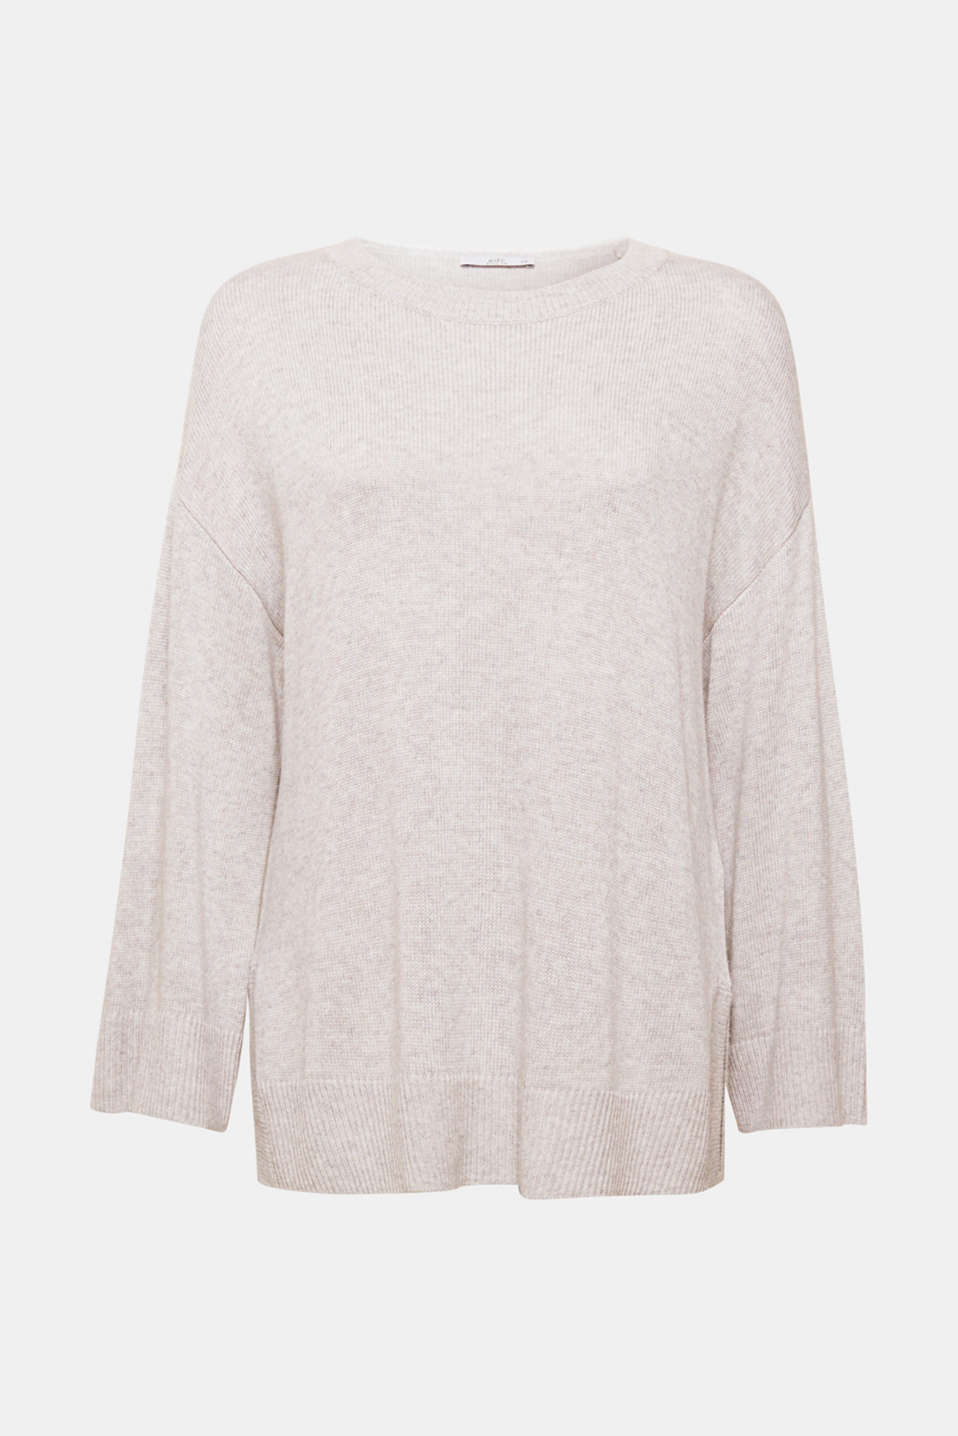 This jumper contains elegant cashmere for a luxe feel. The modern oversized silhouette completes this style.